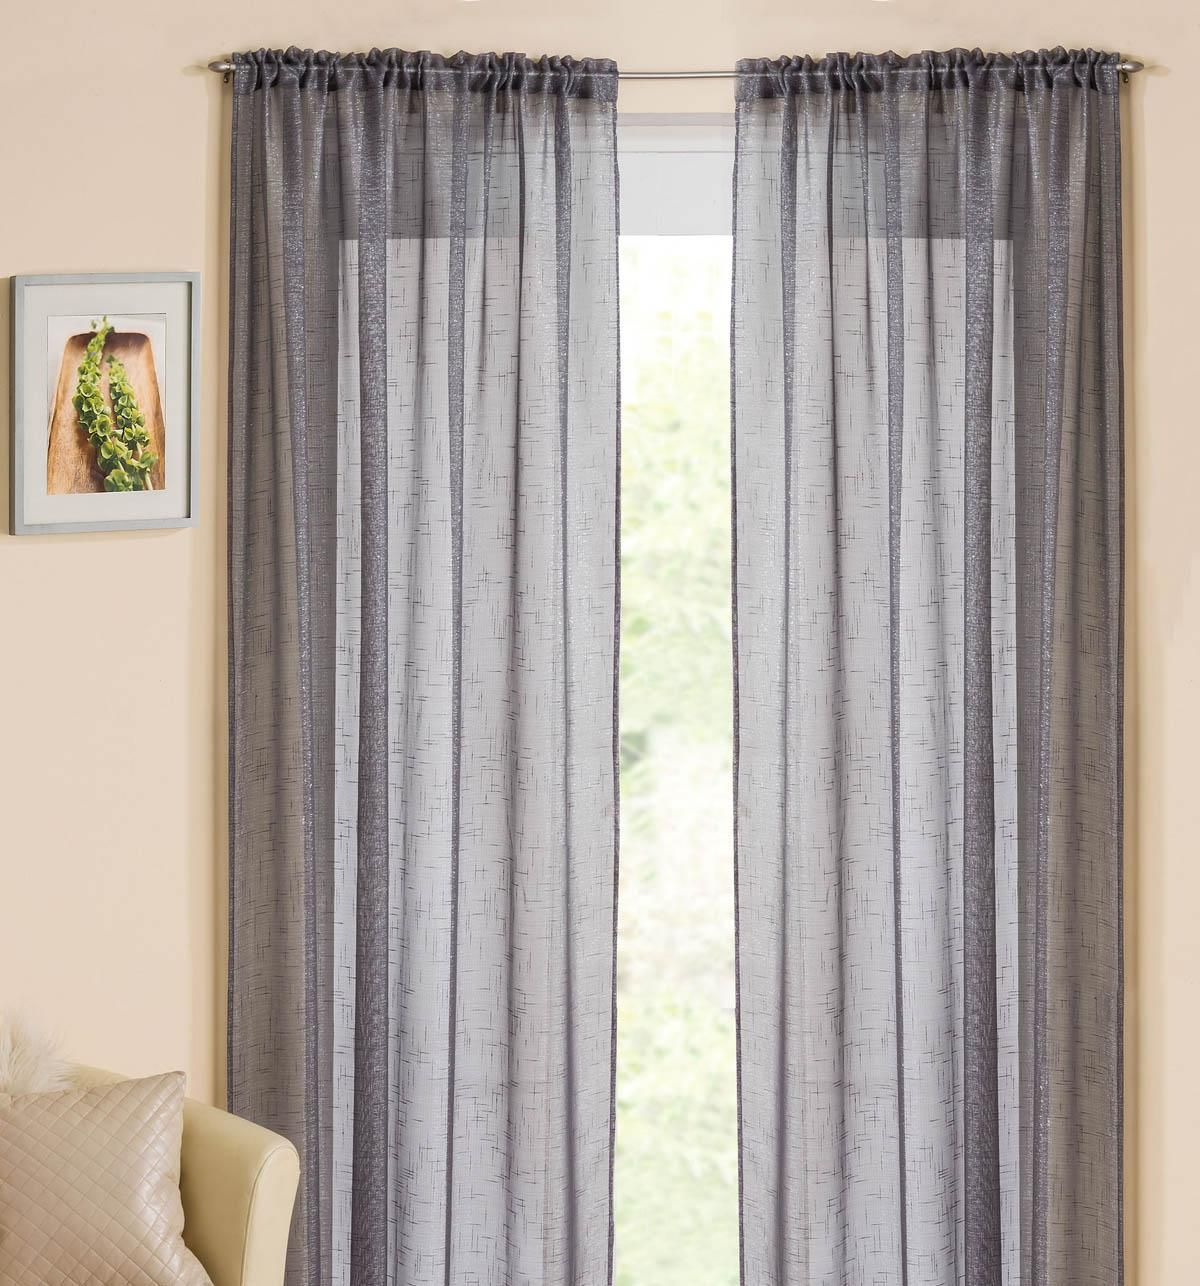 Hallway furniture b&m  Casablanca Rod Pocket Voile Panel Grey  Affordable Curtain Voiles